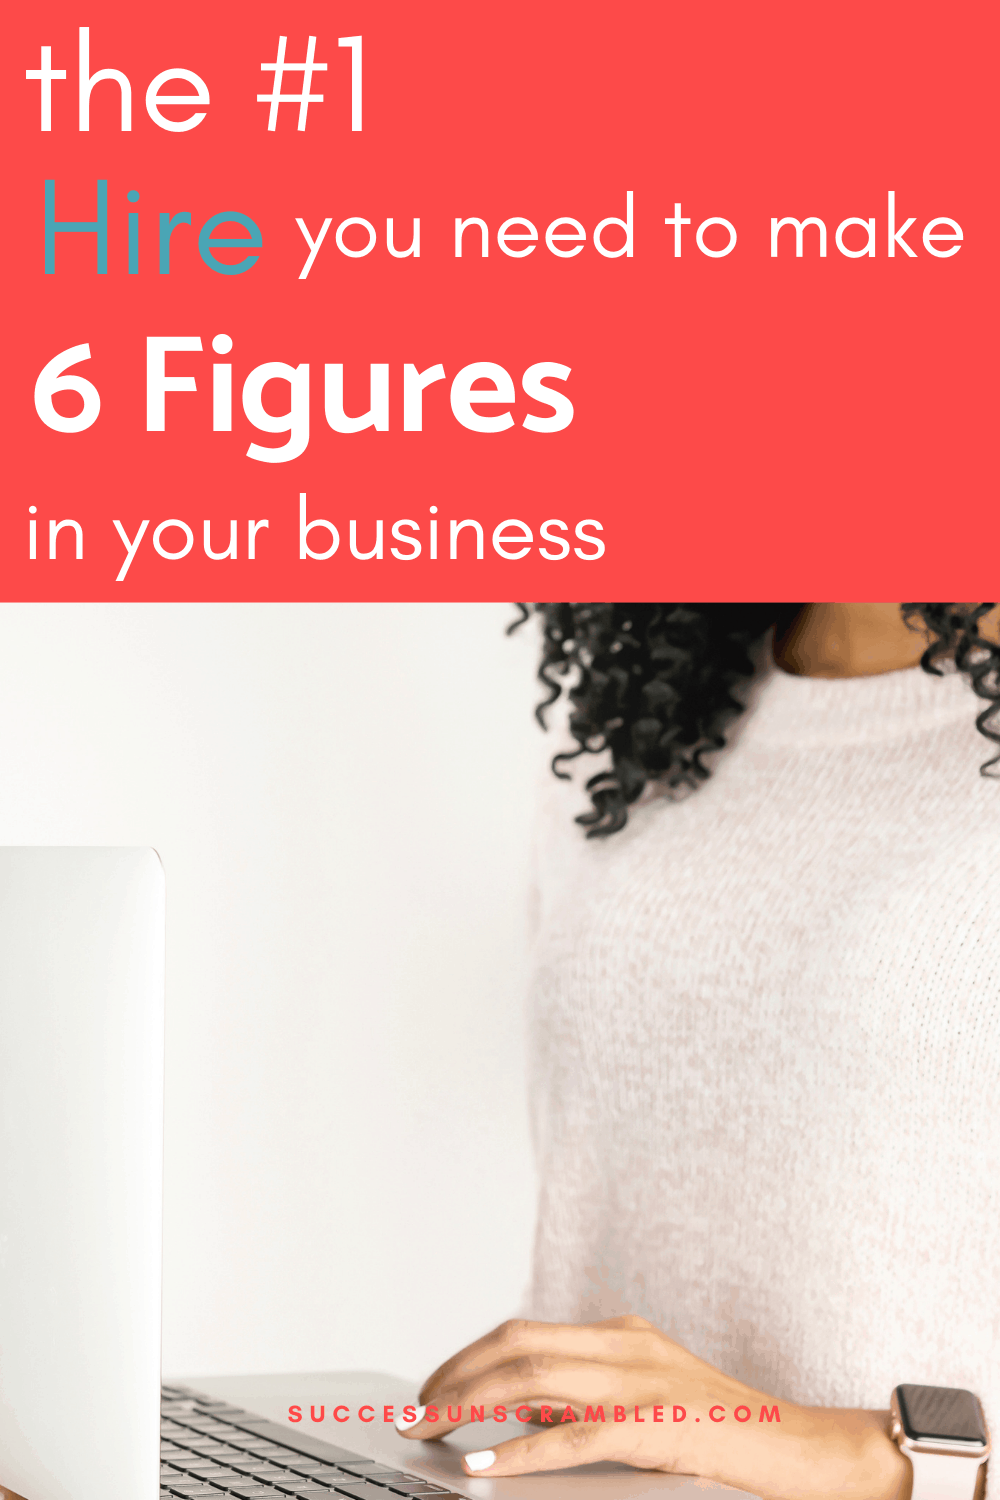 number one hire you need to make 6 figures in your business